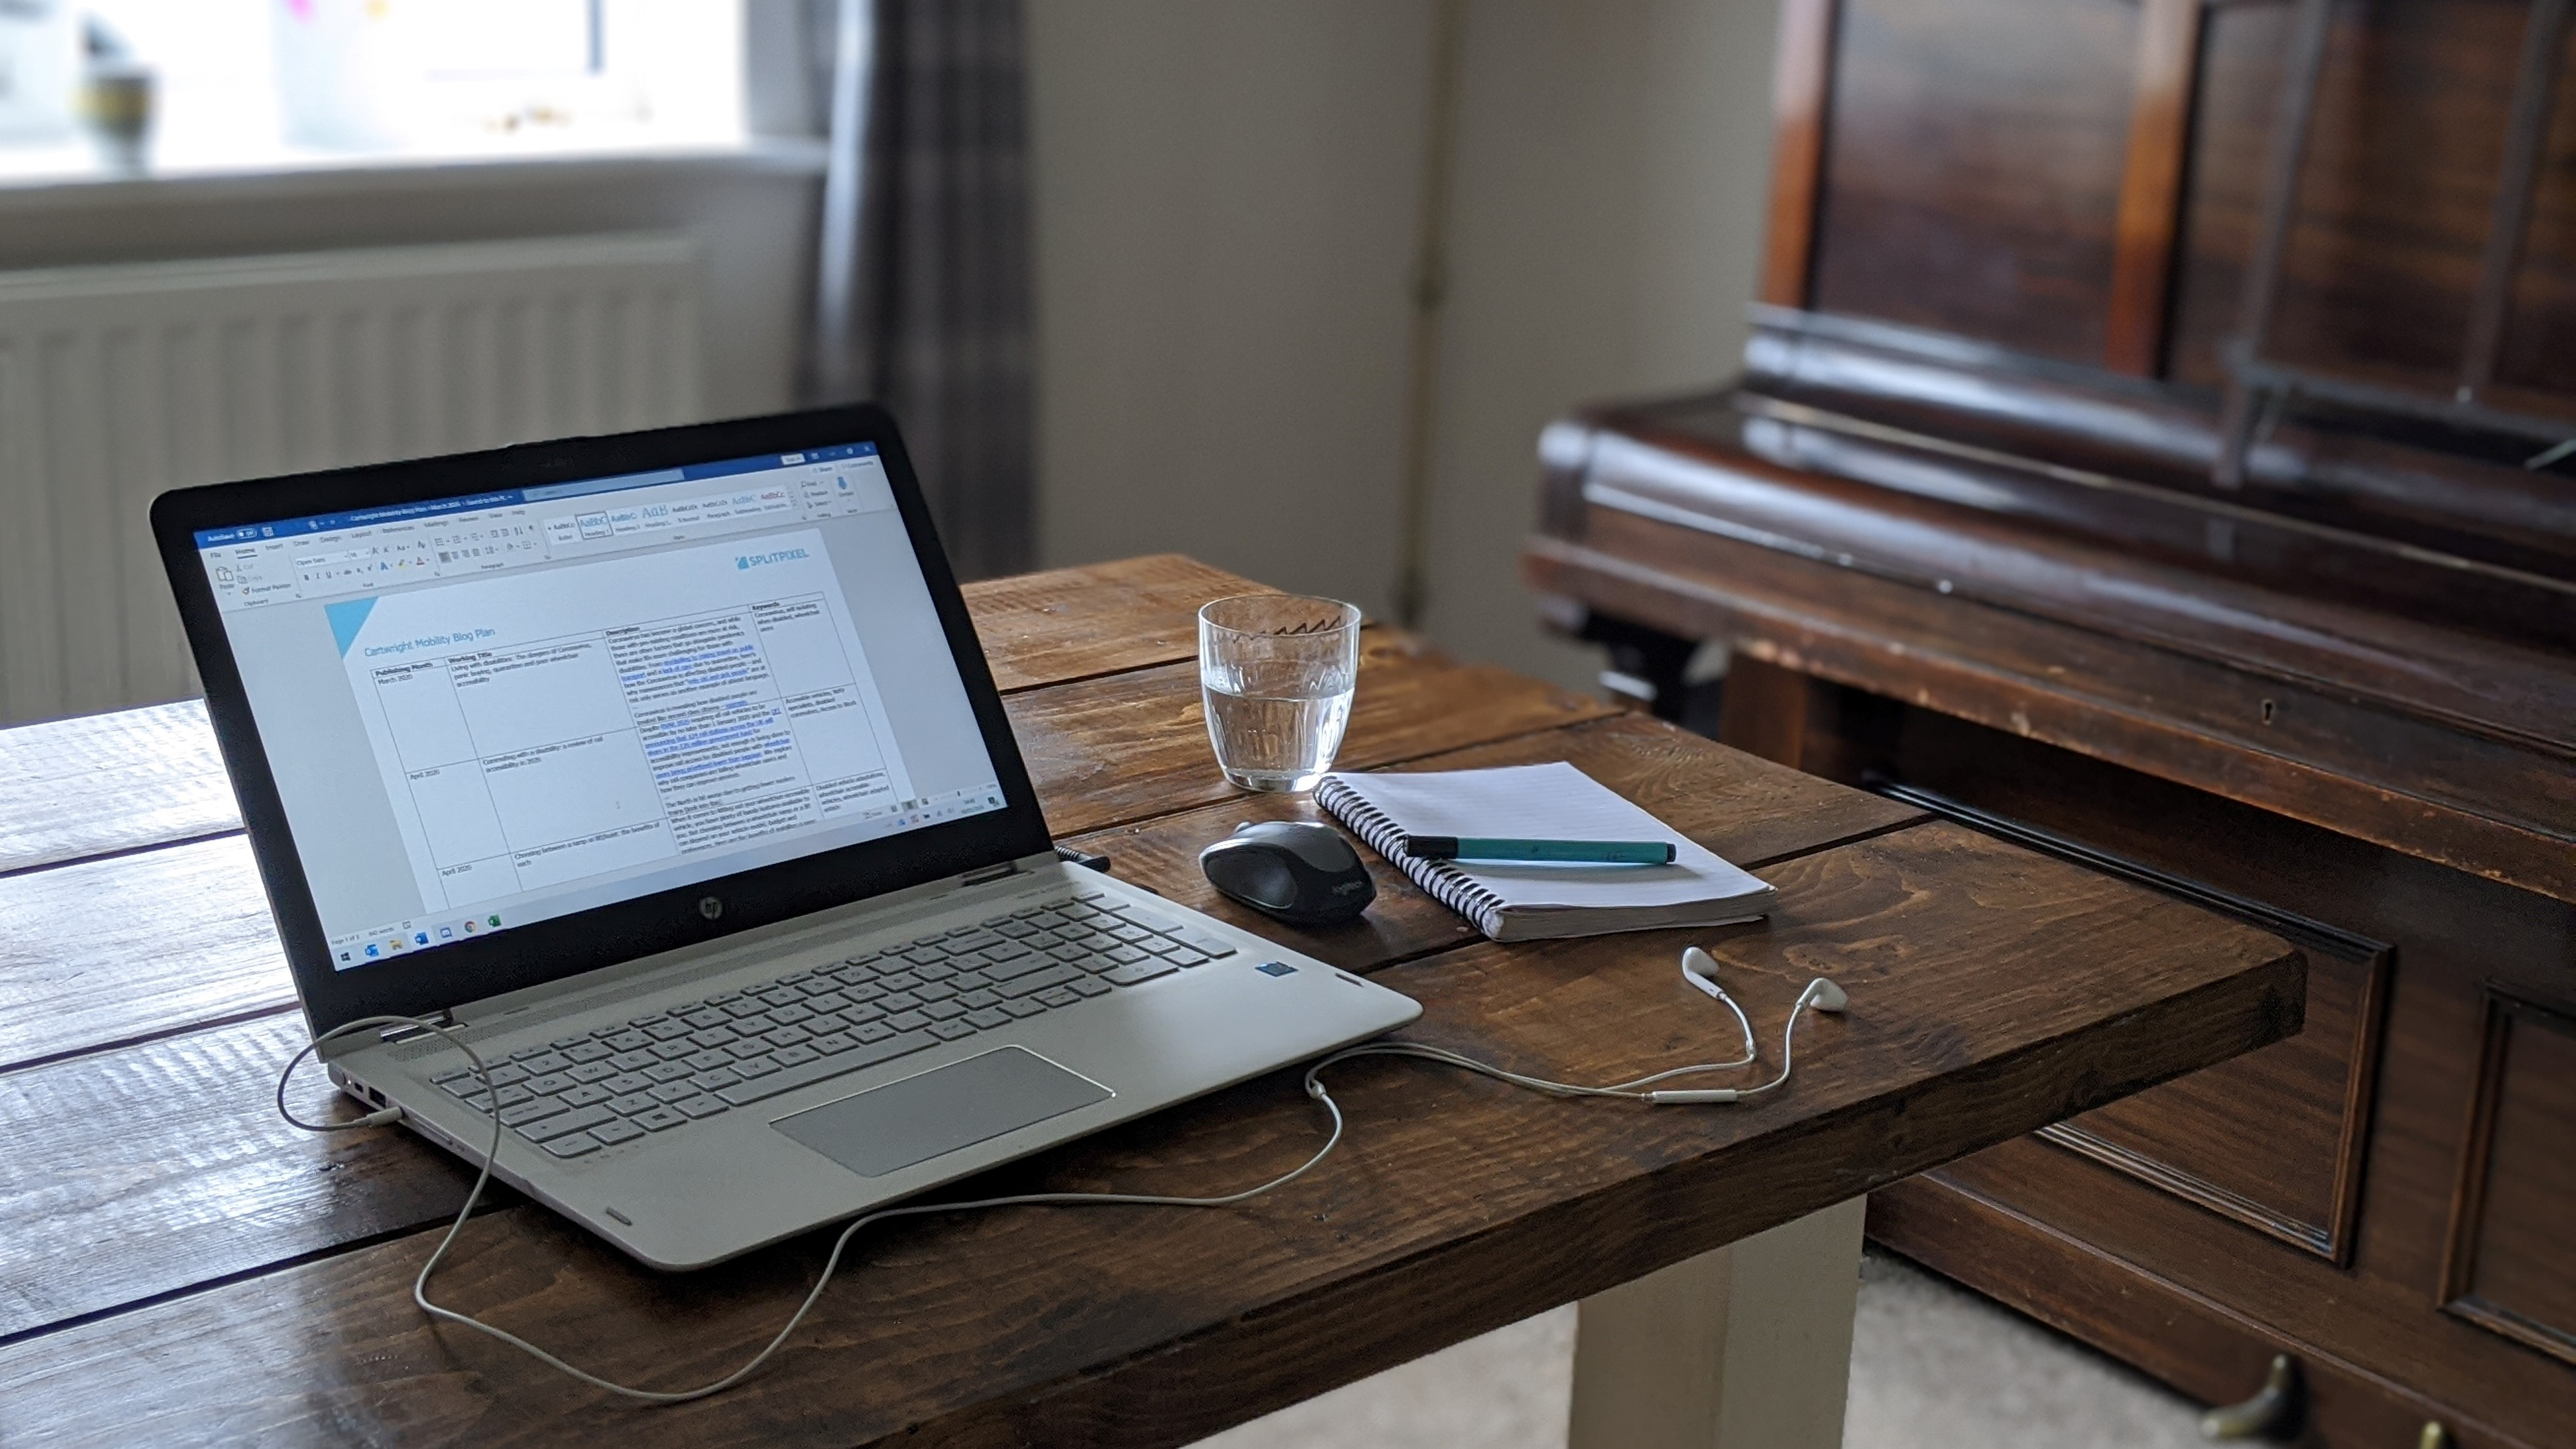 Six seemingly obvious tips for surviving working from home